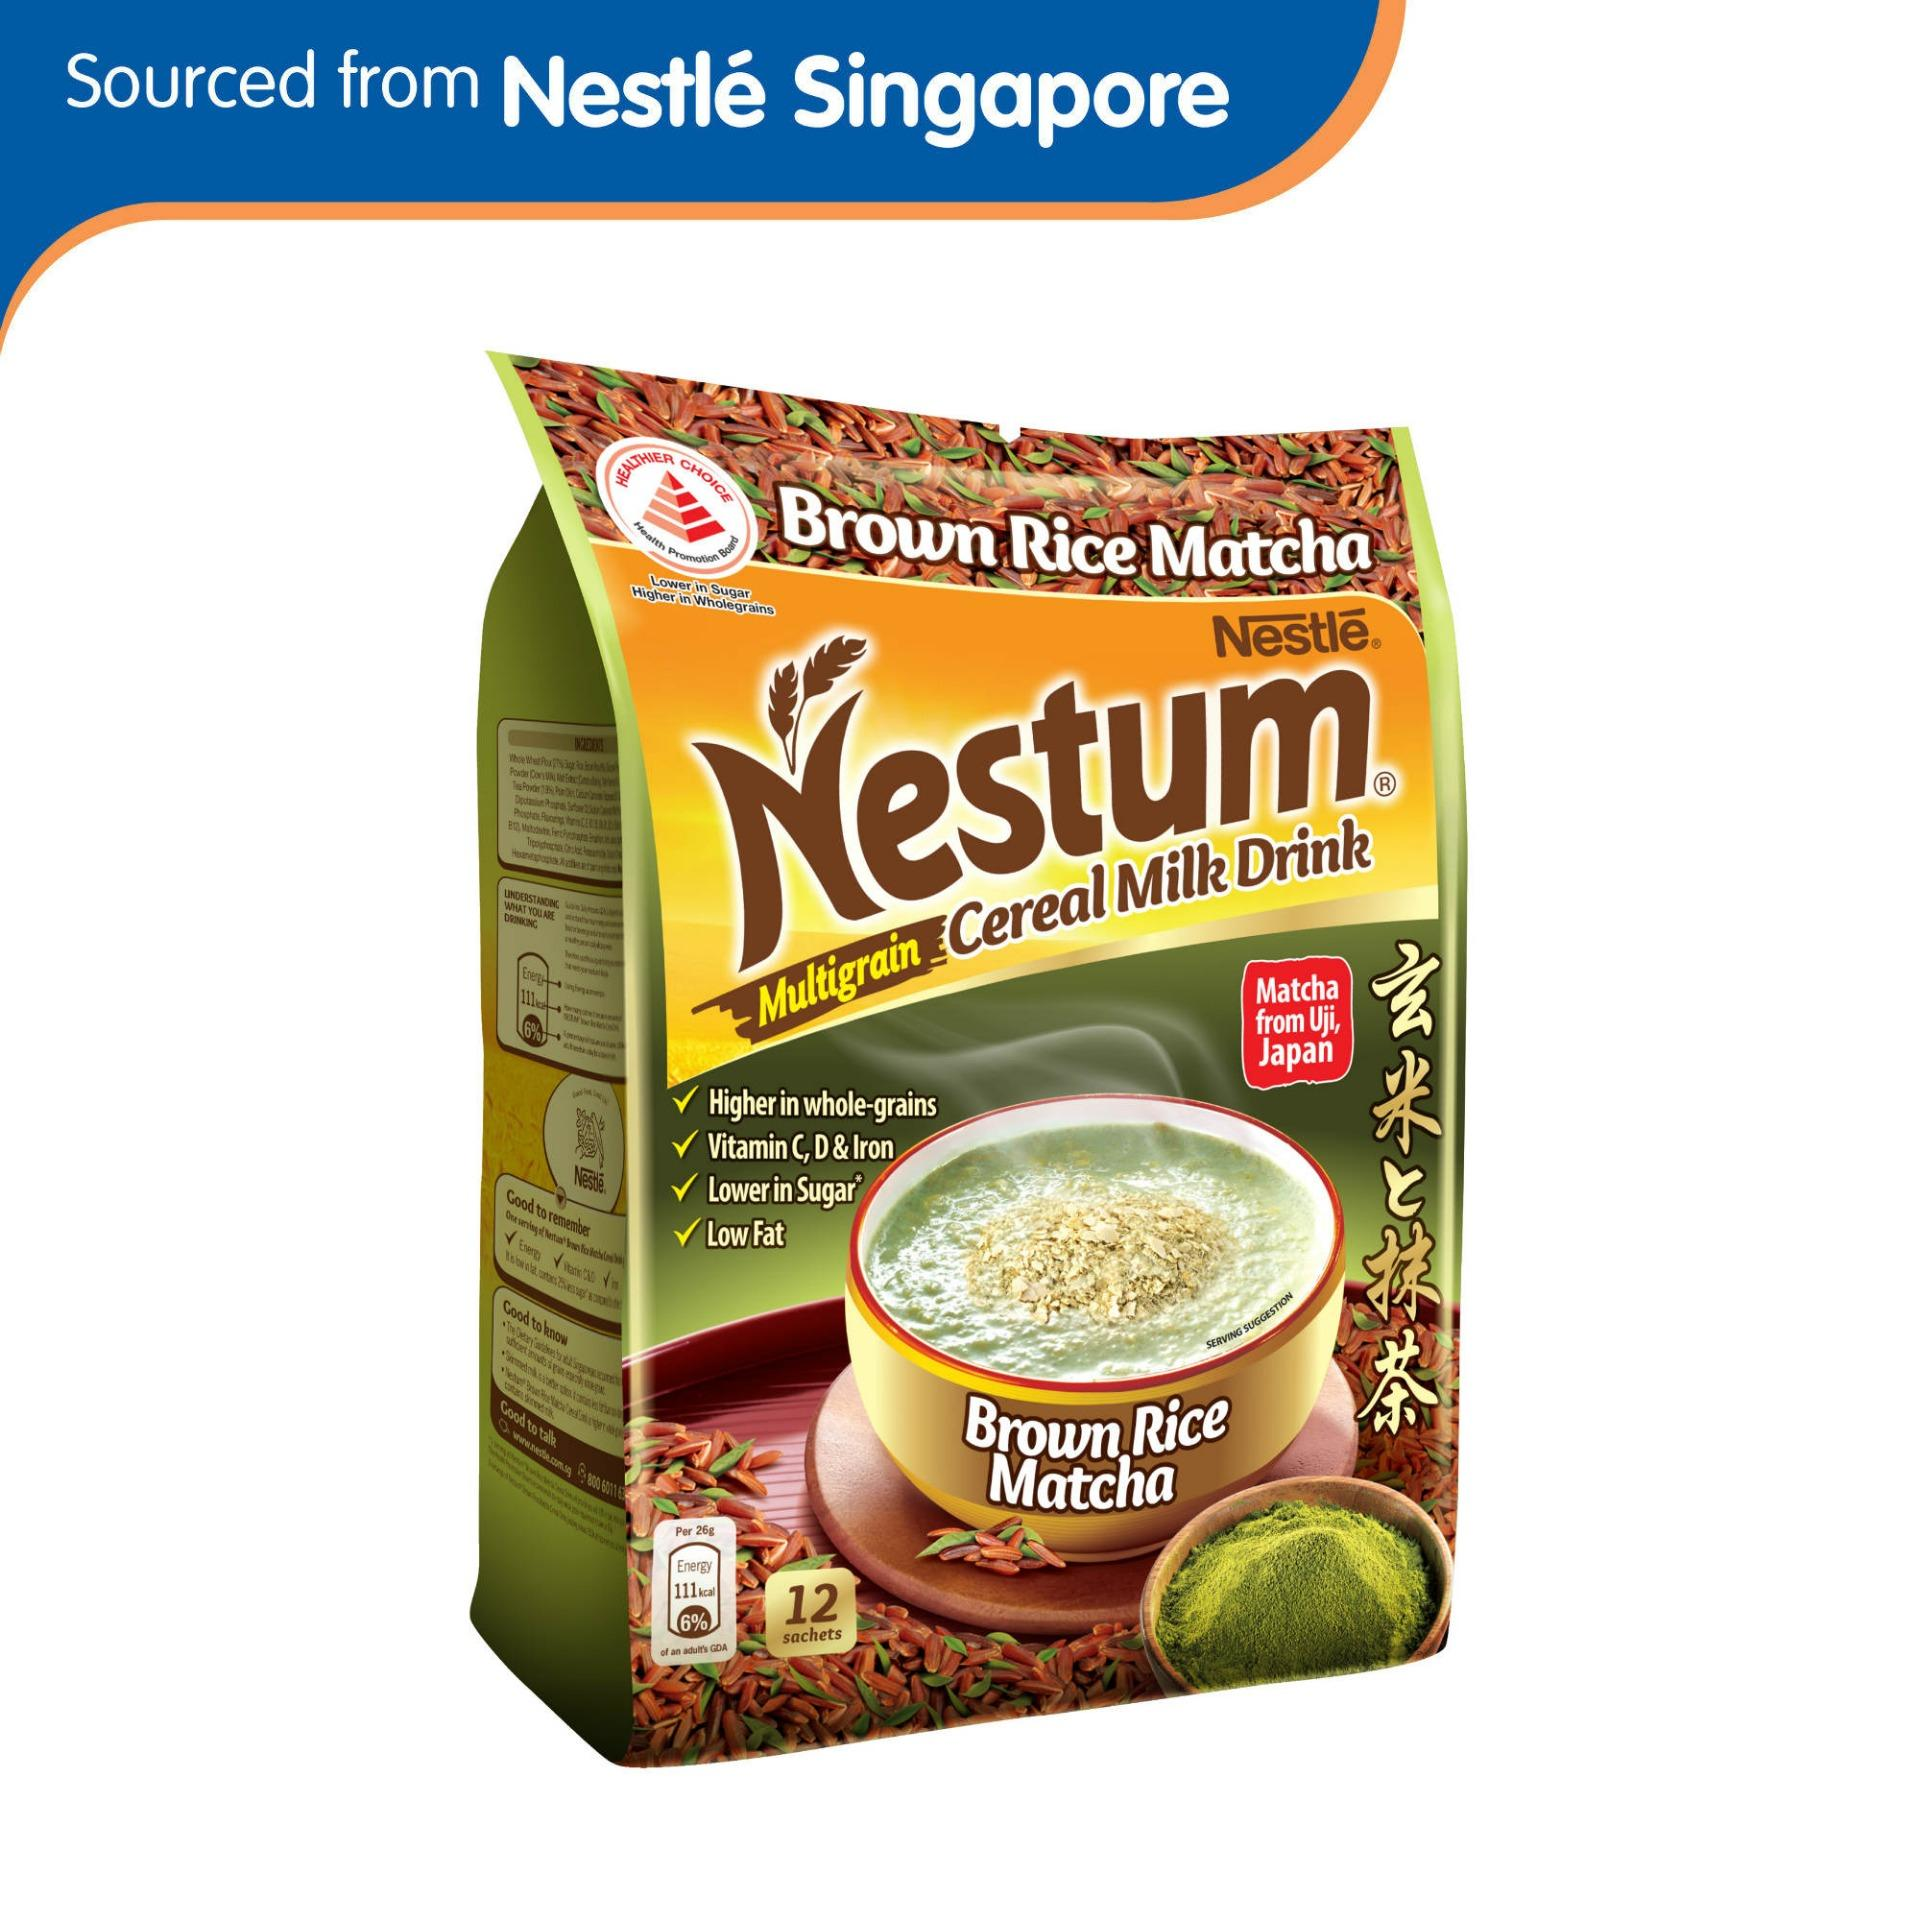 Nestum 3in1 Cereal Drink Brown Rice Matcha 12 X 26g By Nestle Official Store.